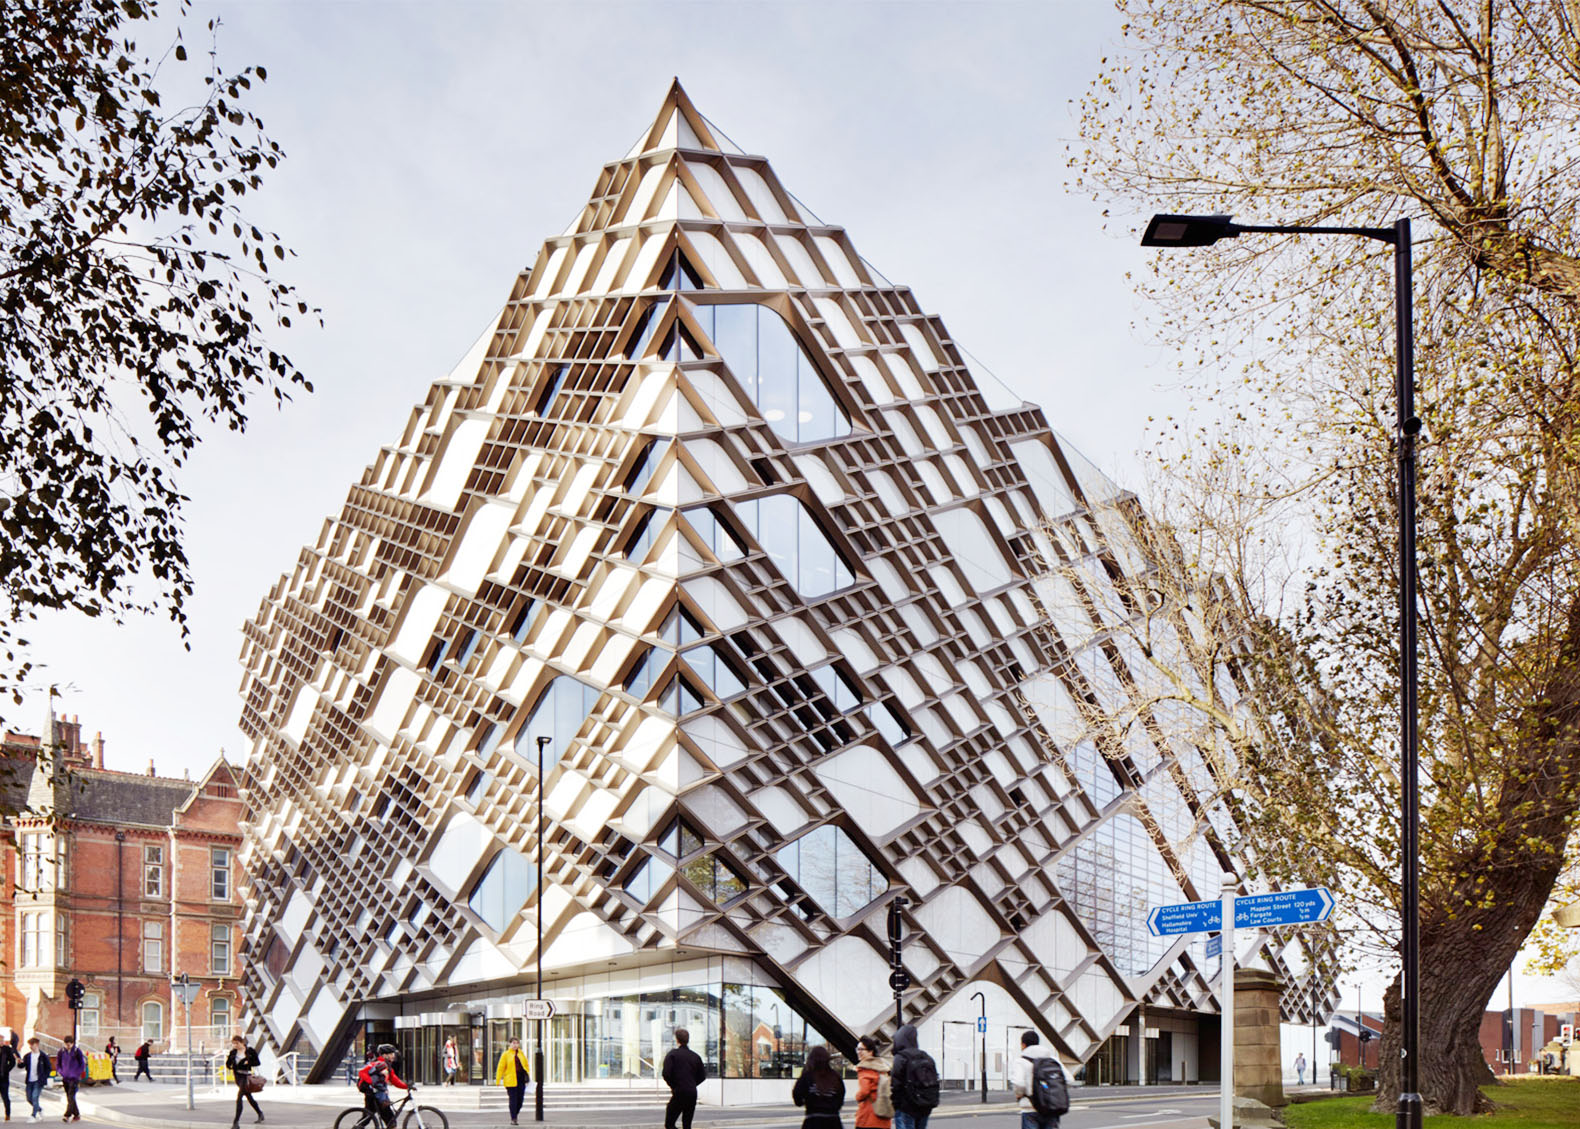 Sheffield's striking Diamond Building is wrapped in a cellular pattern that controls solar gain